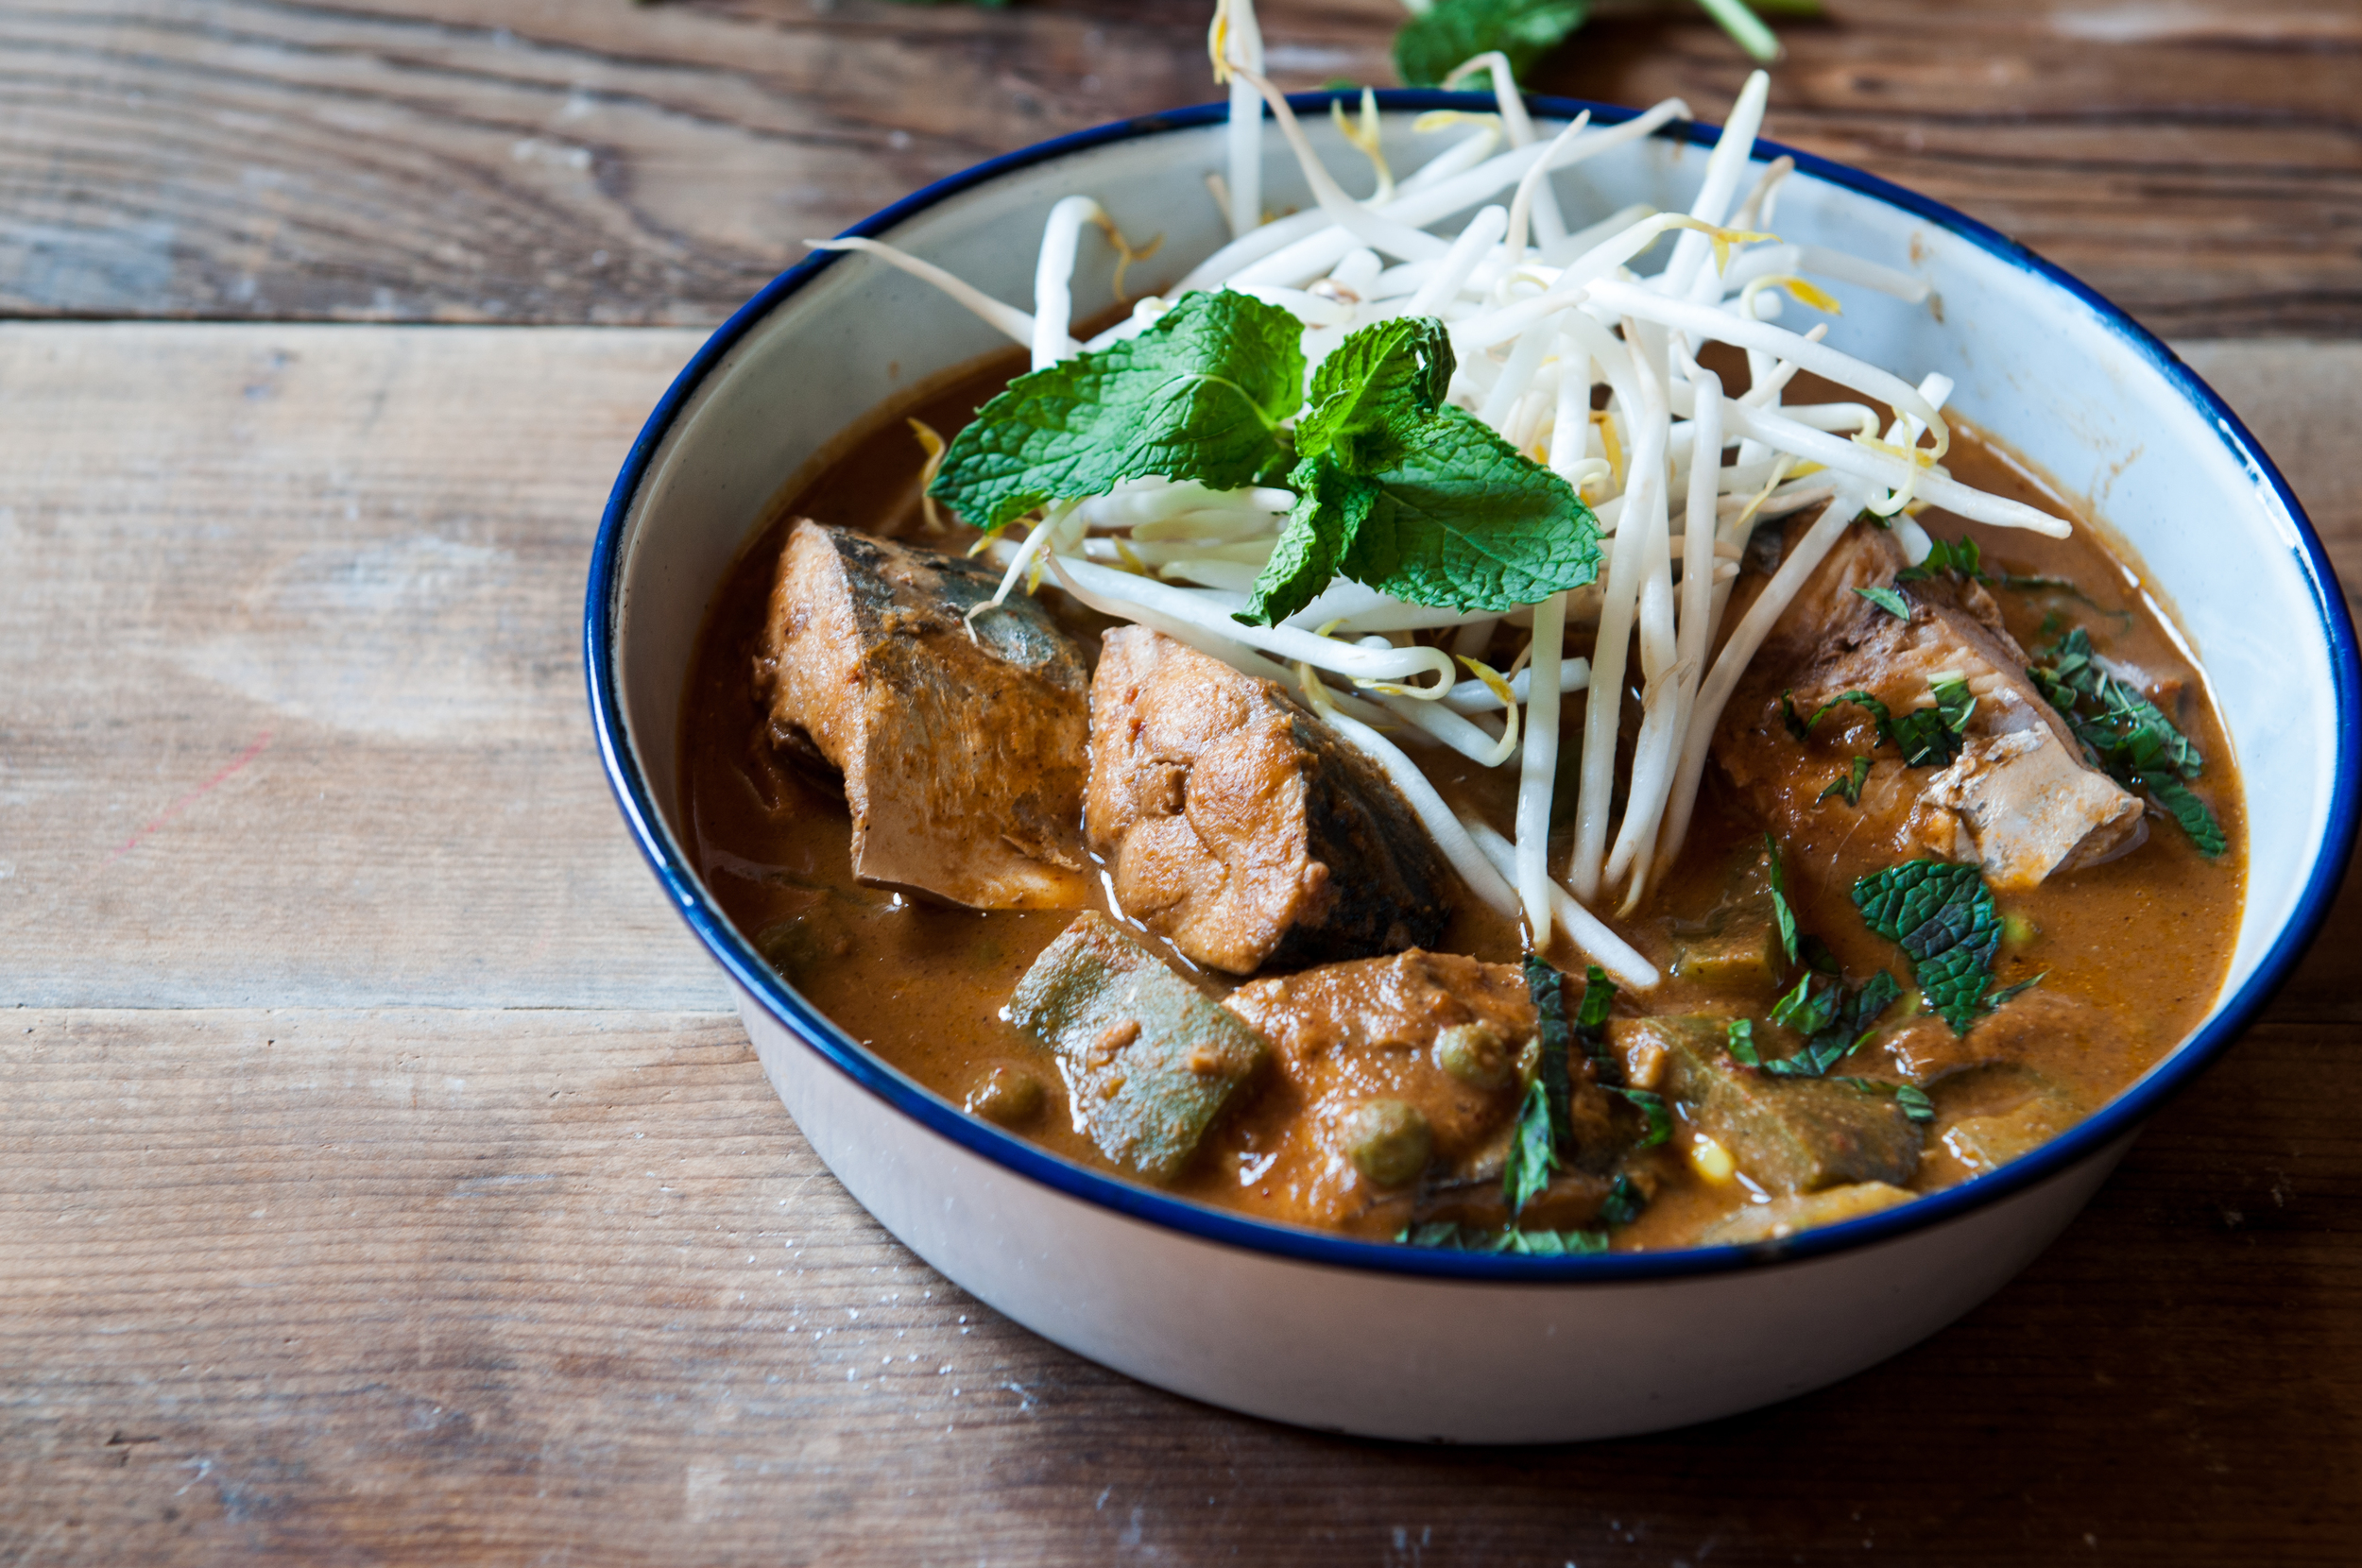 This is a straight up, honest blue collar fish curry cooked with spices that leave you with no doubt of having eaten, full and satisfied. It brings back the memories of fish markets, screaming fishmongers, roadside food havens and the earthiness of a day's labor.